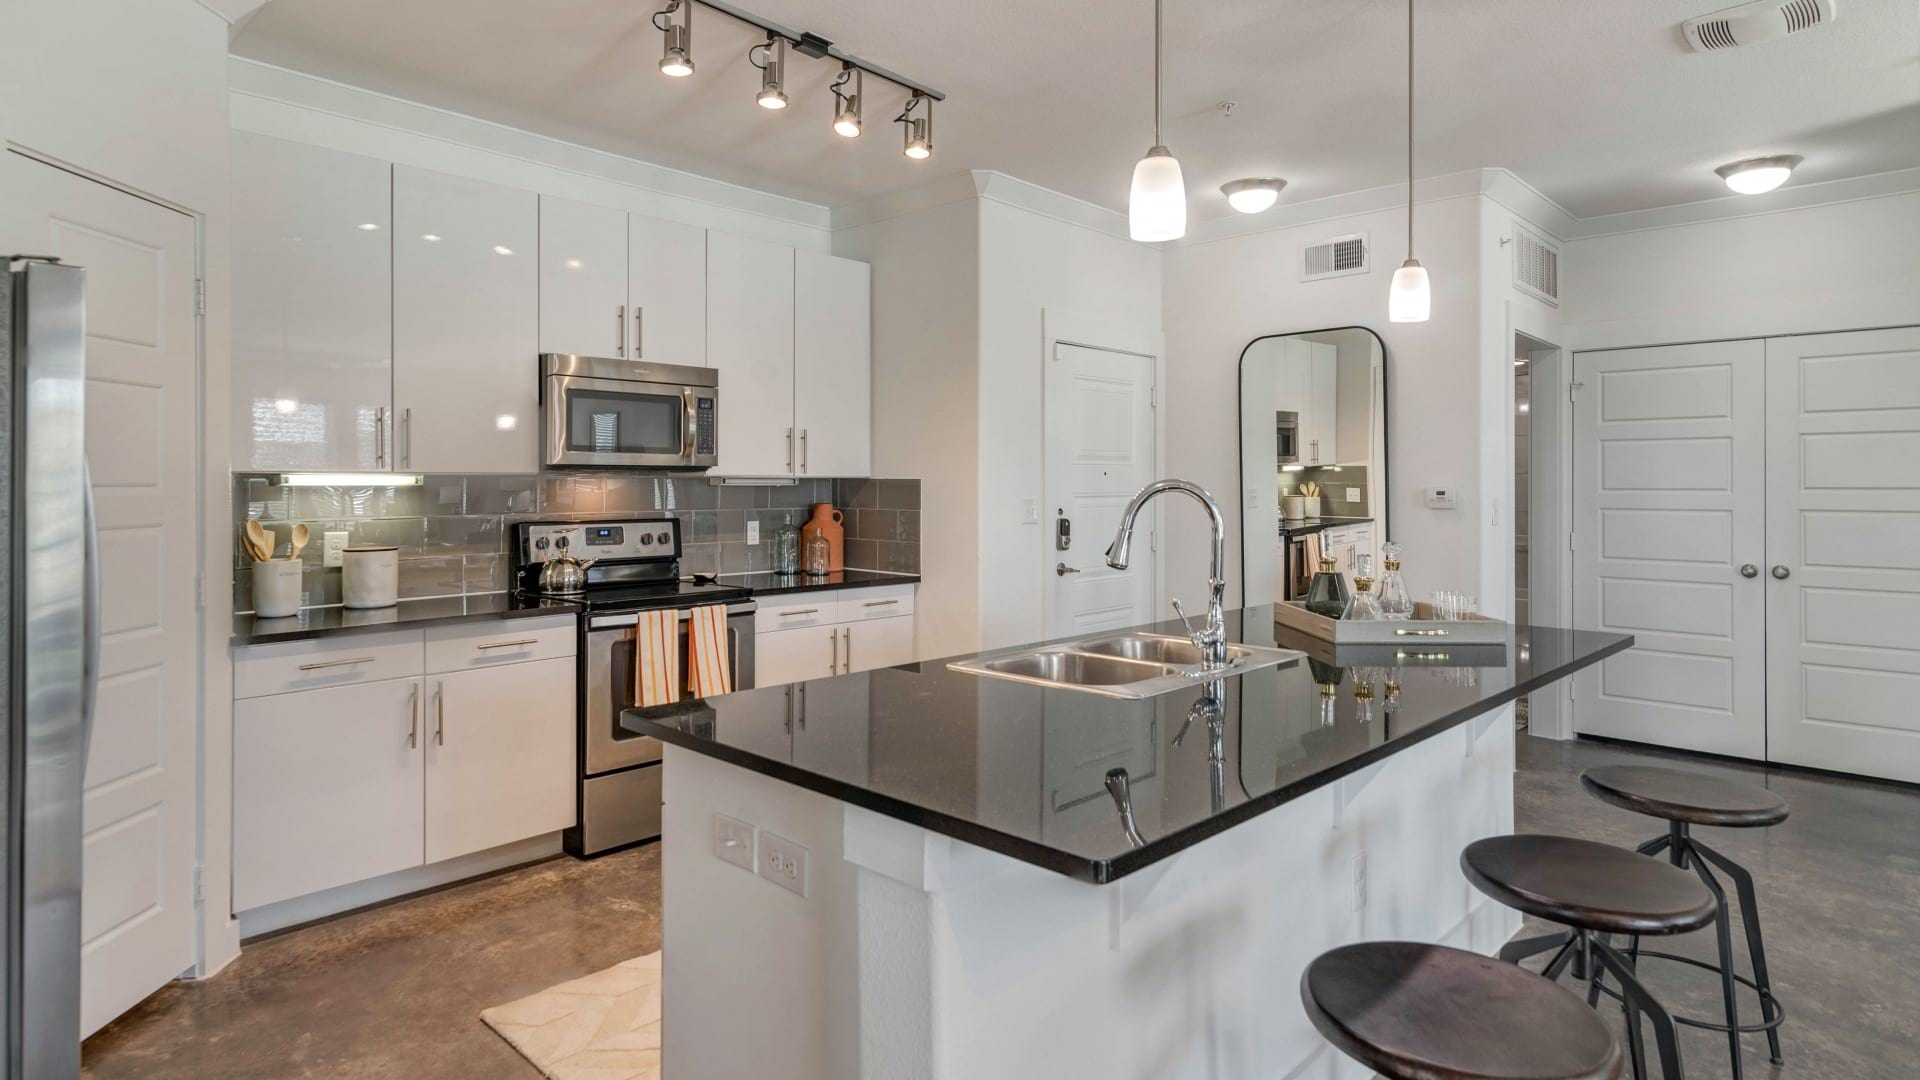 Spacious apartment kitchen with granite countertops